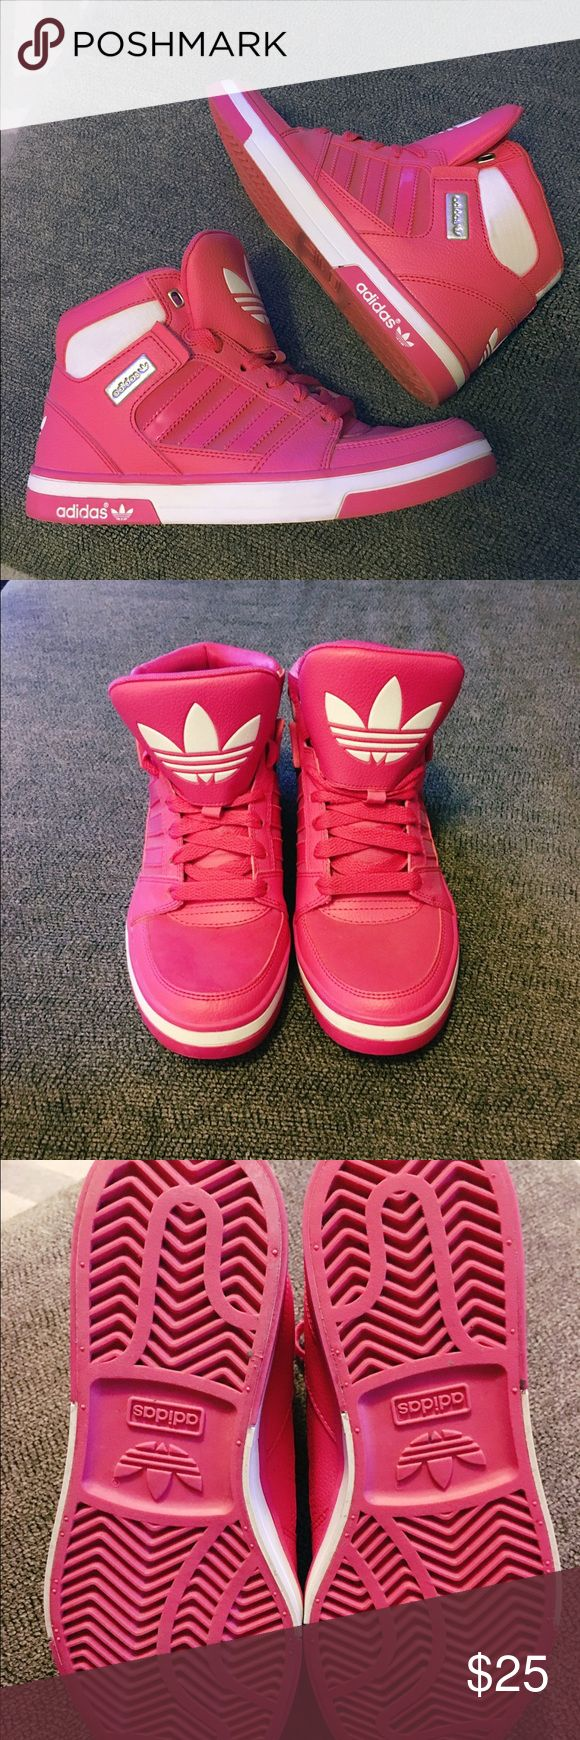 Adidas Ortholite High tops like new 5y = 7 women Pink and white Adidas High top gym shoes. Ortholite Like new size 5 youth which is equivalent to size 7 in women's Adidas Shoes Athletic Shoes